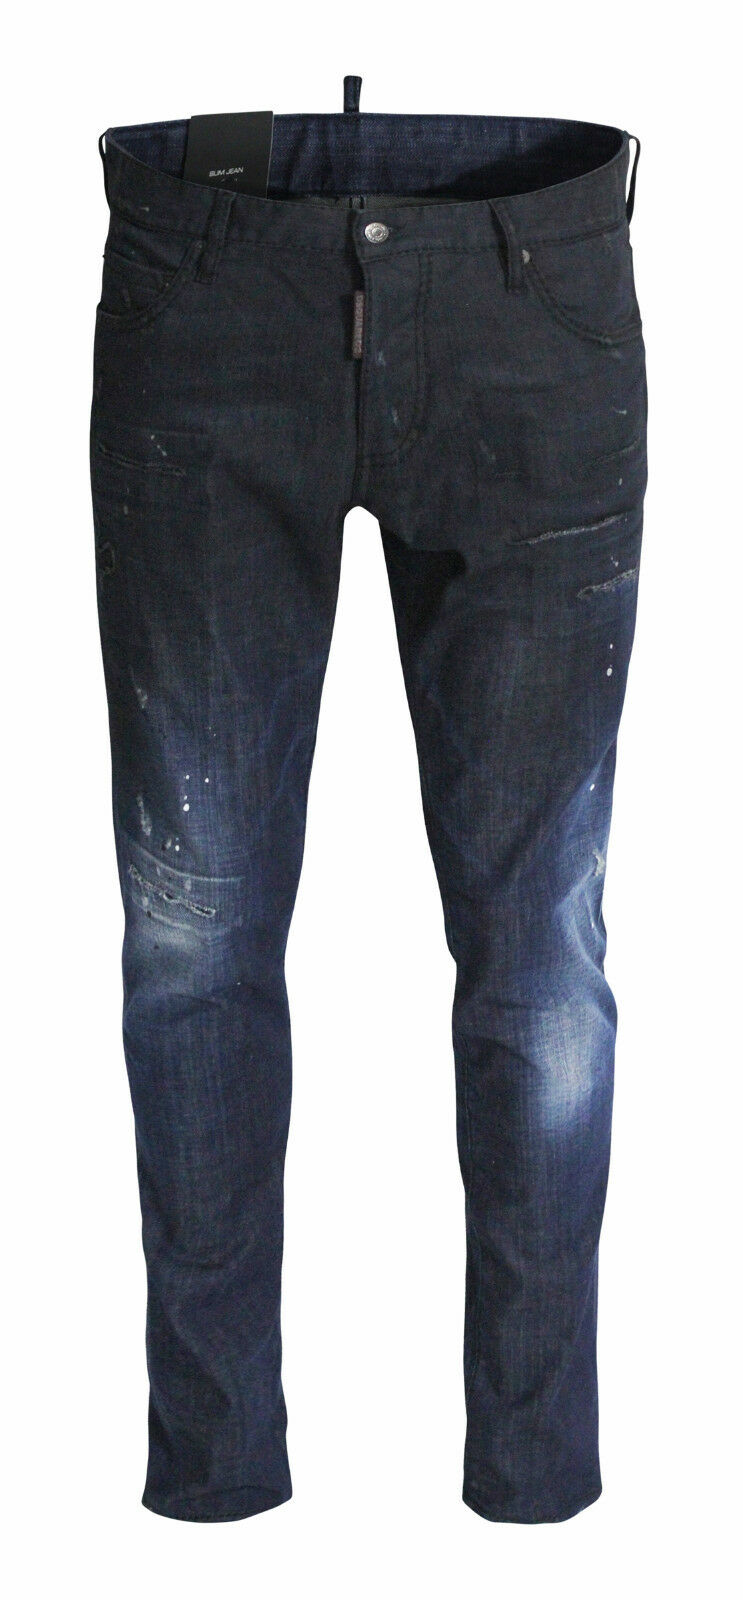 DSQUArot SLIM JEANS WASHED DESTROYED DUNKELBLAU DENIM JEANS S74LB0018 GR 46 NEU